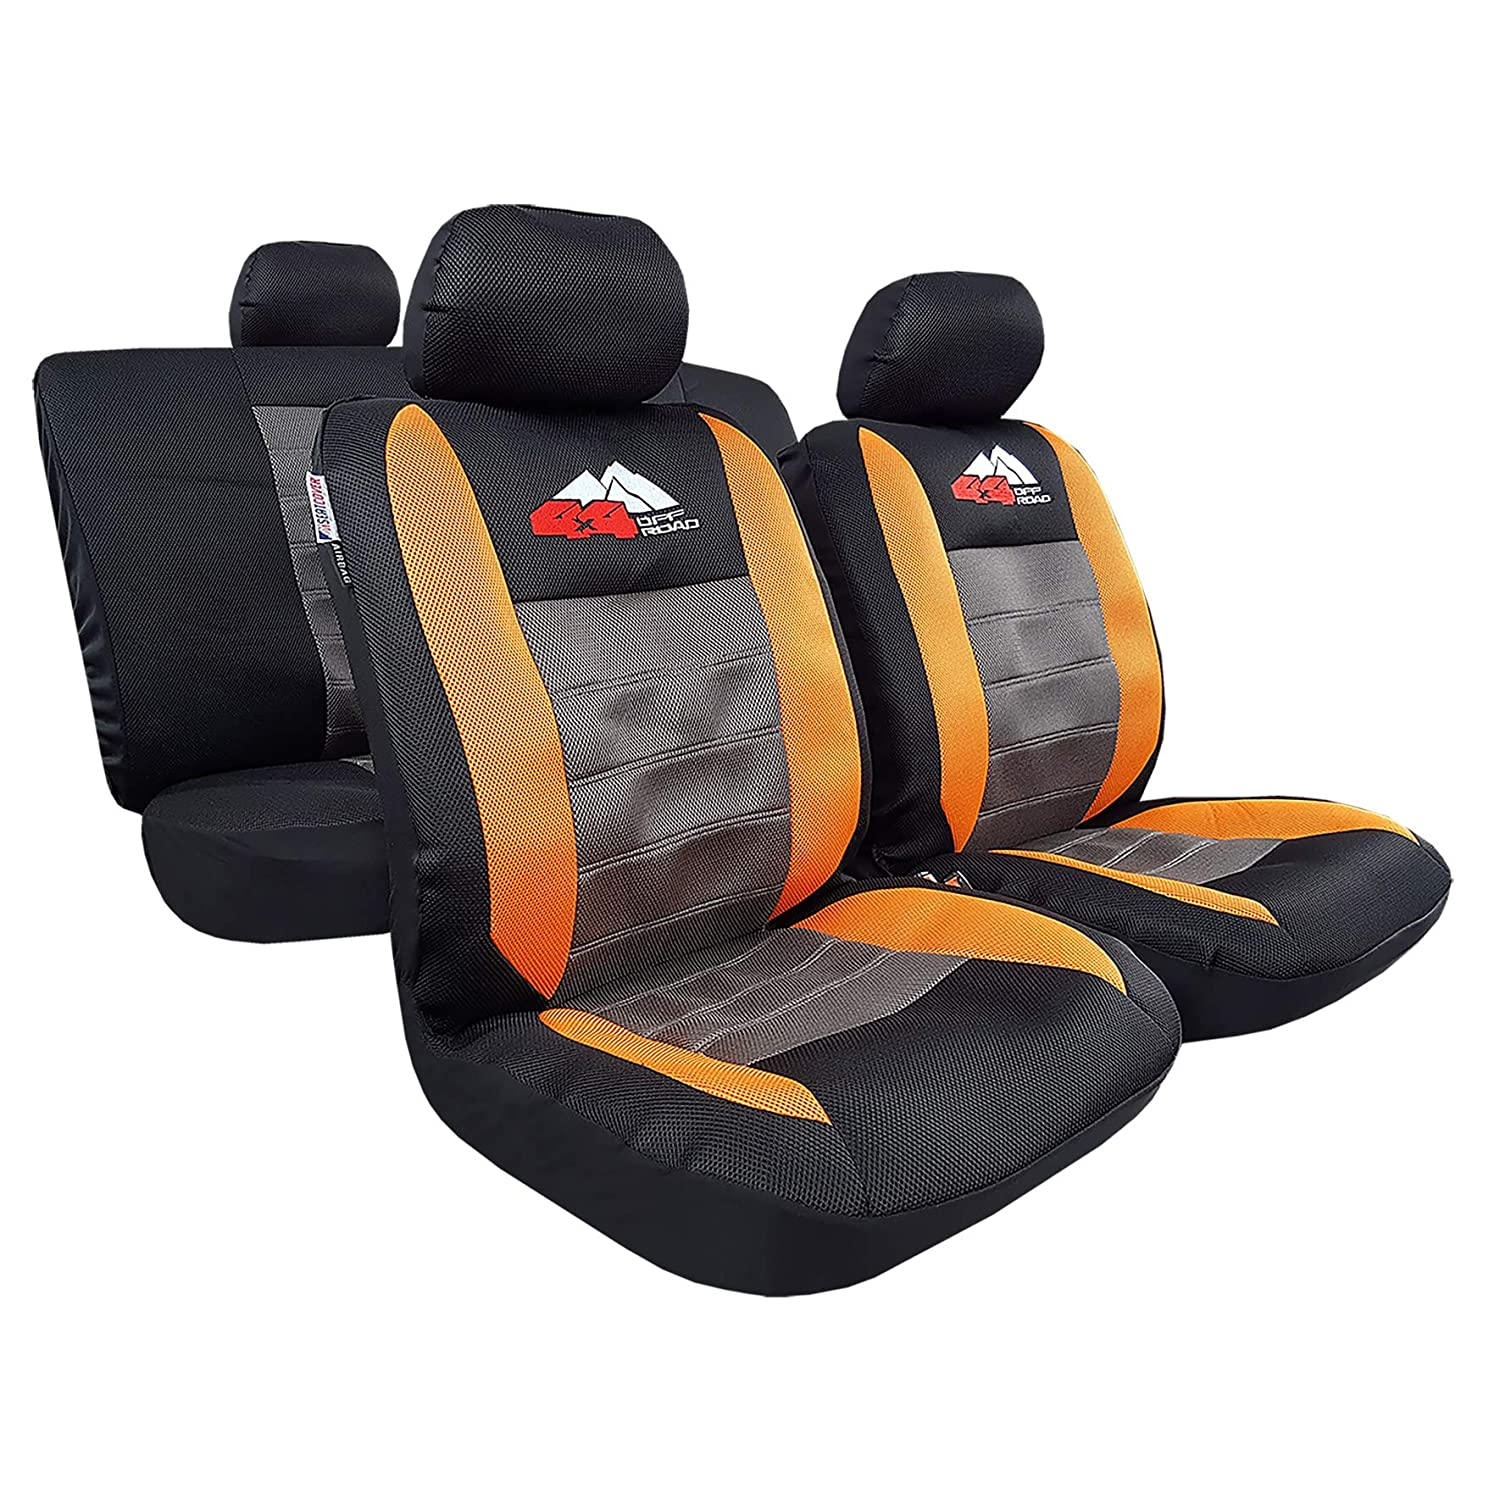 8 Color Options Cool in Summer Warm in Winter 9pcs Complete Set Skull Gray Car Seat Covers Airflow Mesh Embroidery w//t 40//20//40 Split Rear Universal Size for Tacoma